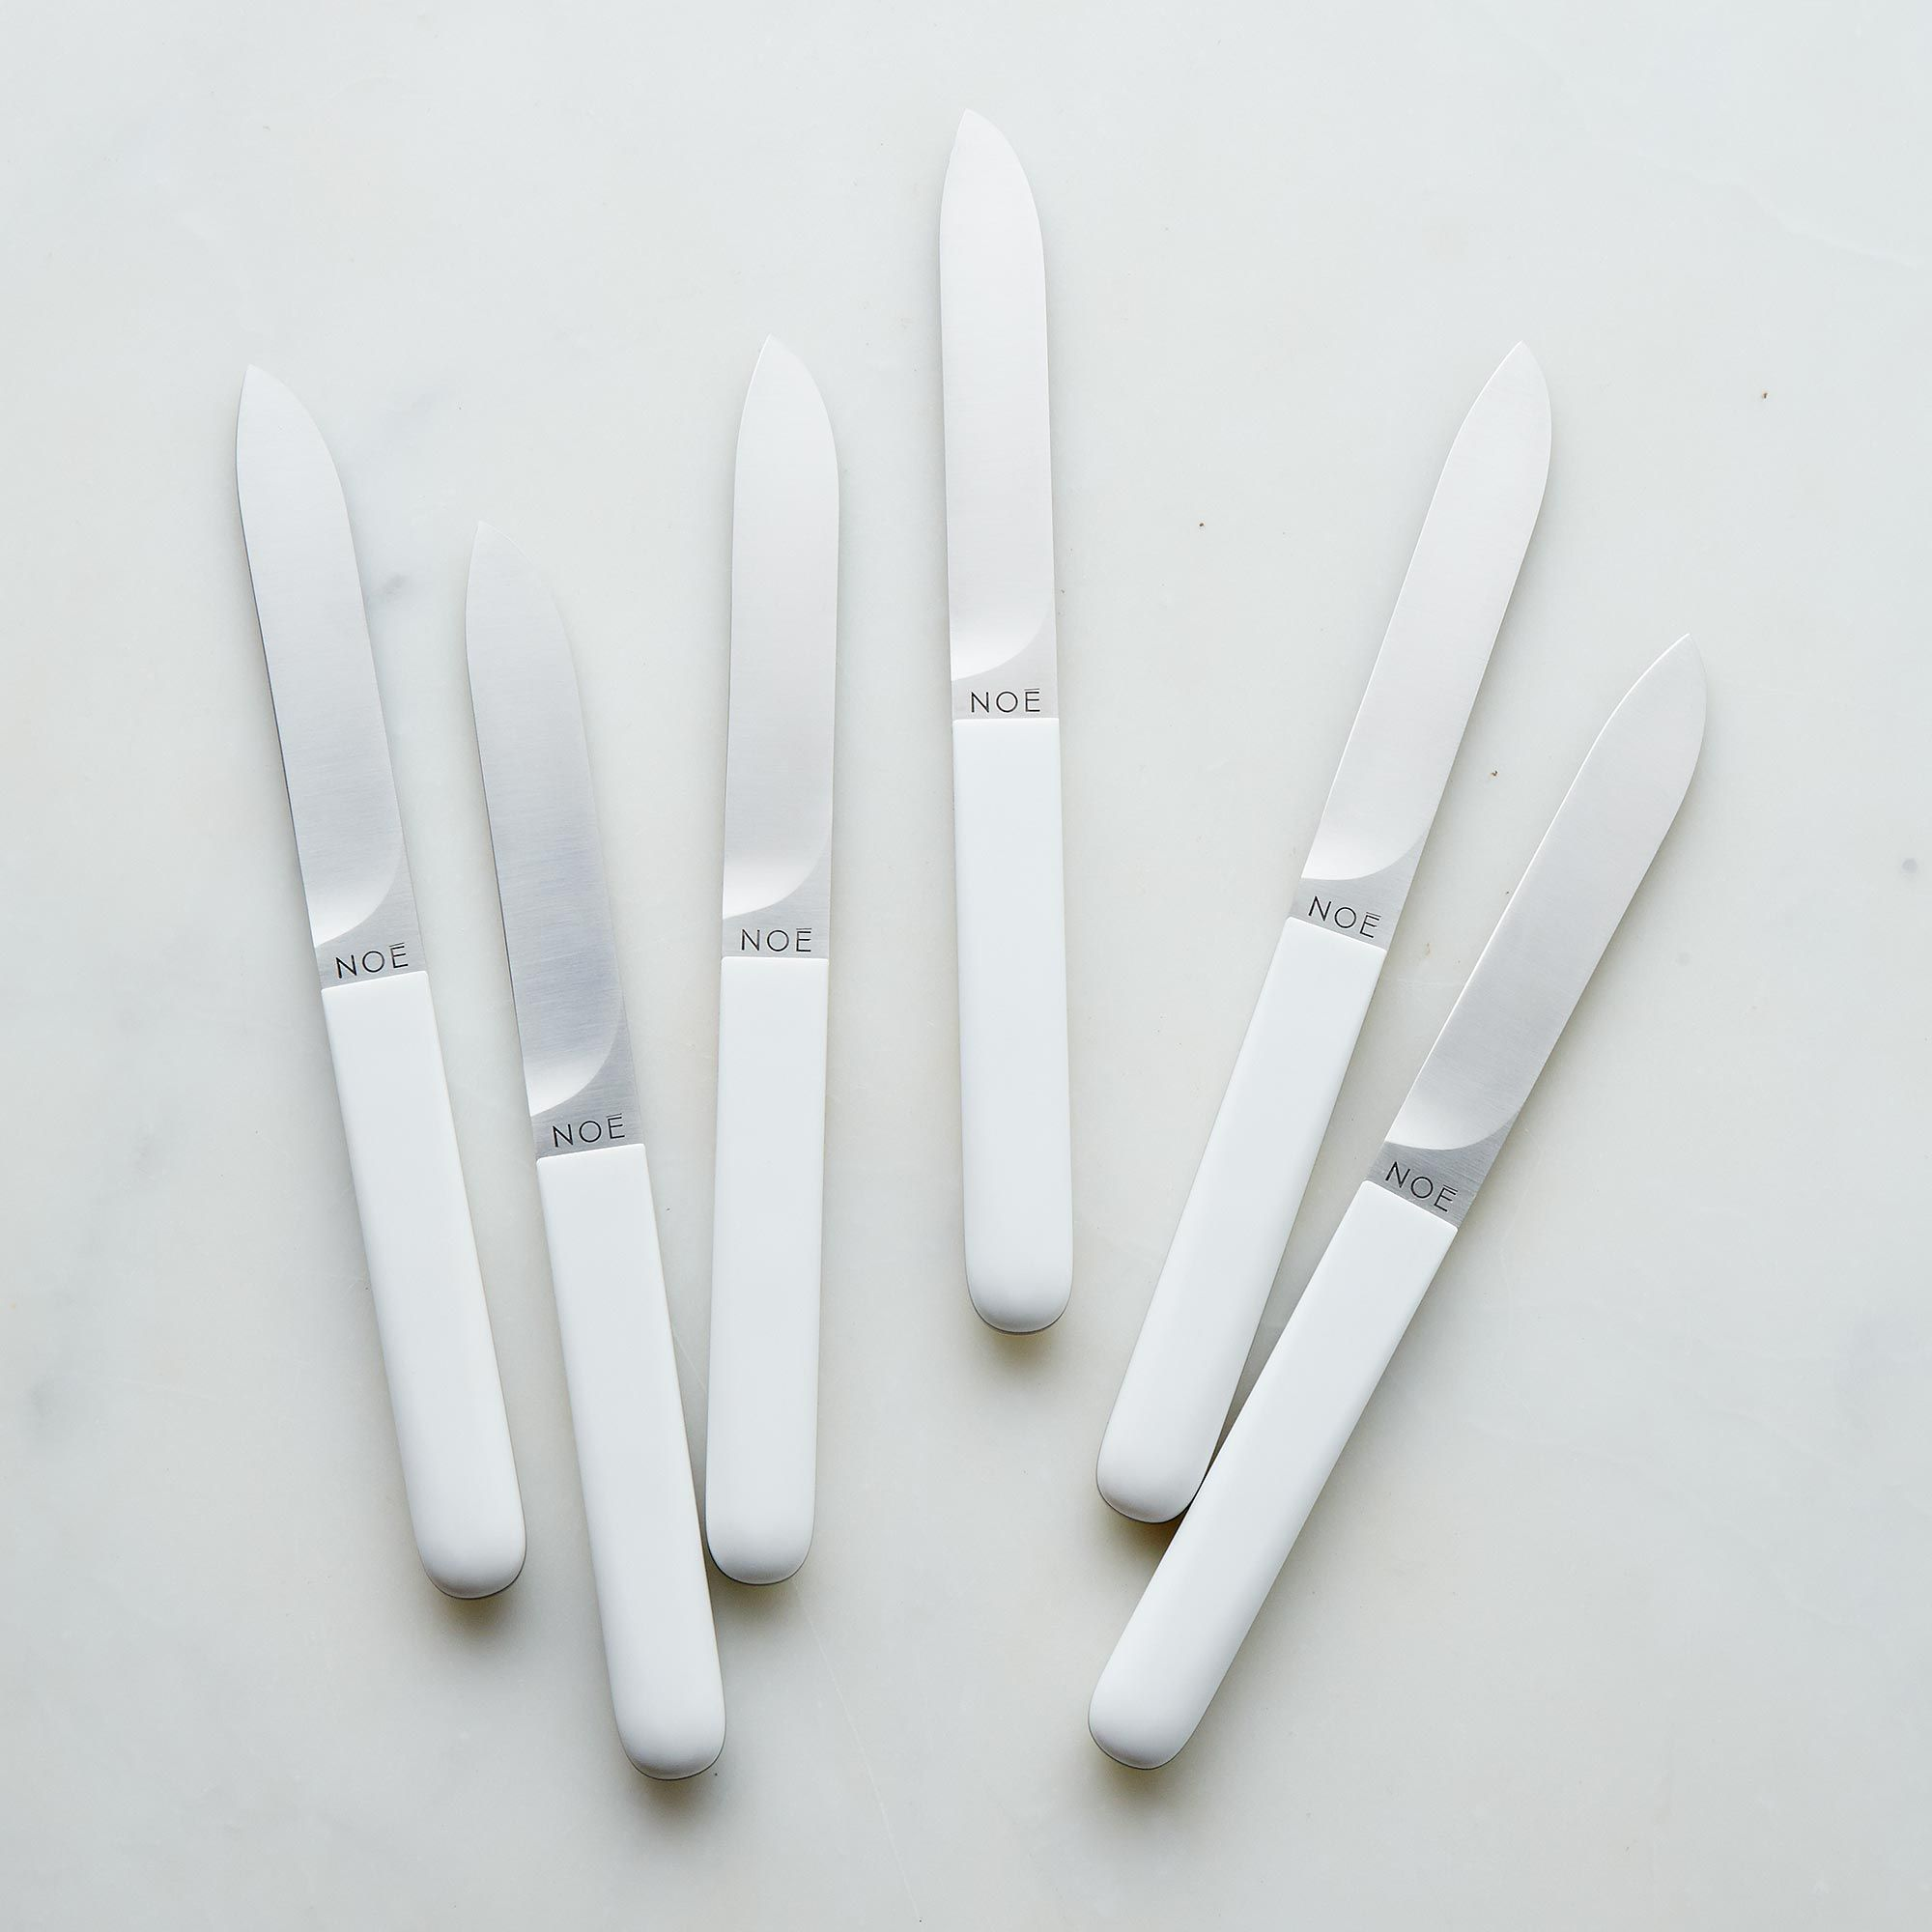 D43776b4-c97b-4577-bb4e-f7ded4cc7ea8--2014-1029_perceval_noe-french-steak-knives-016